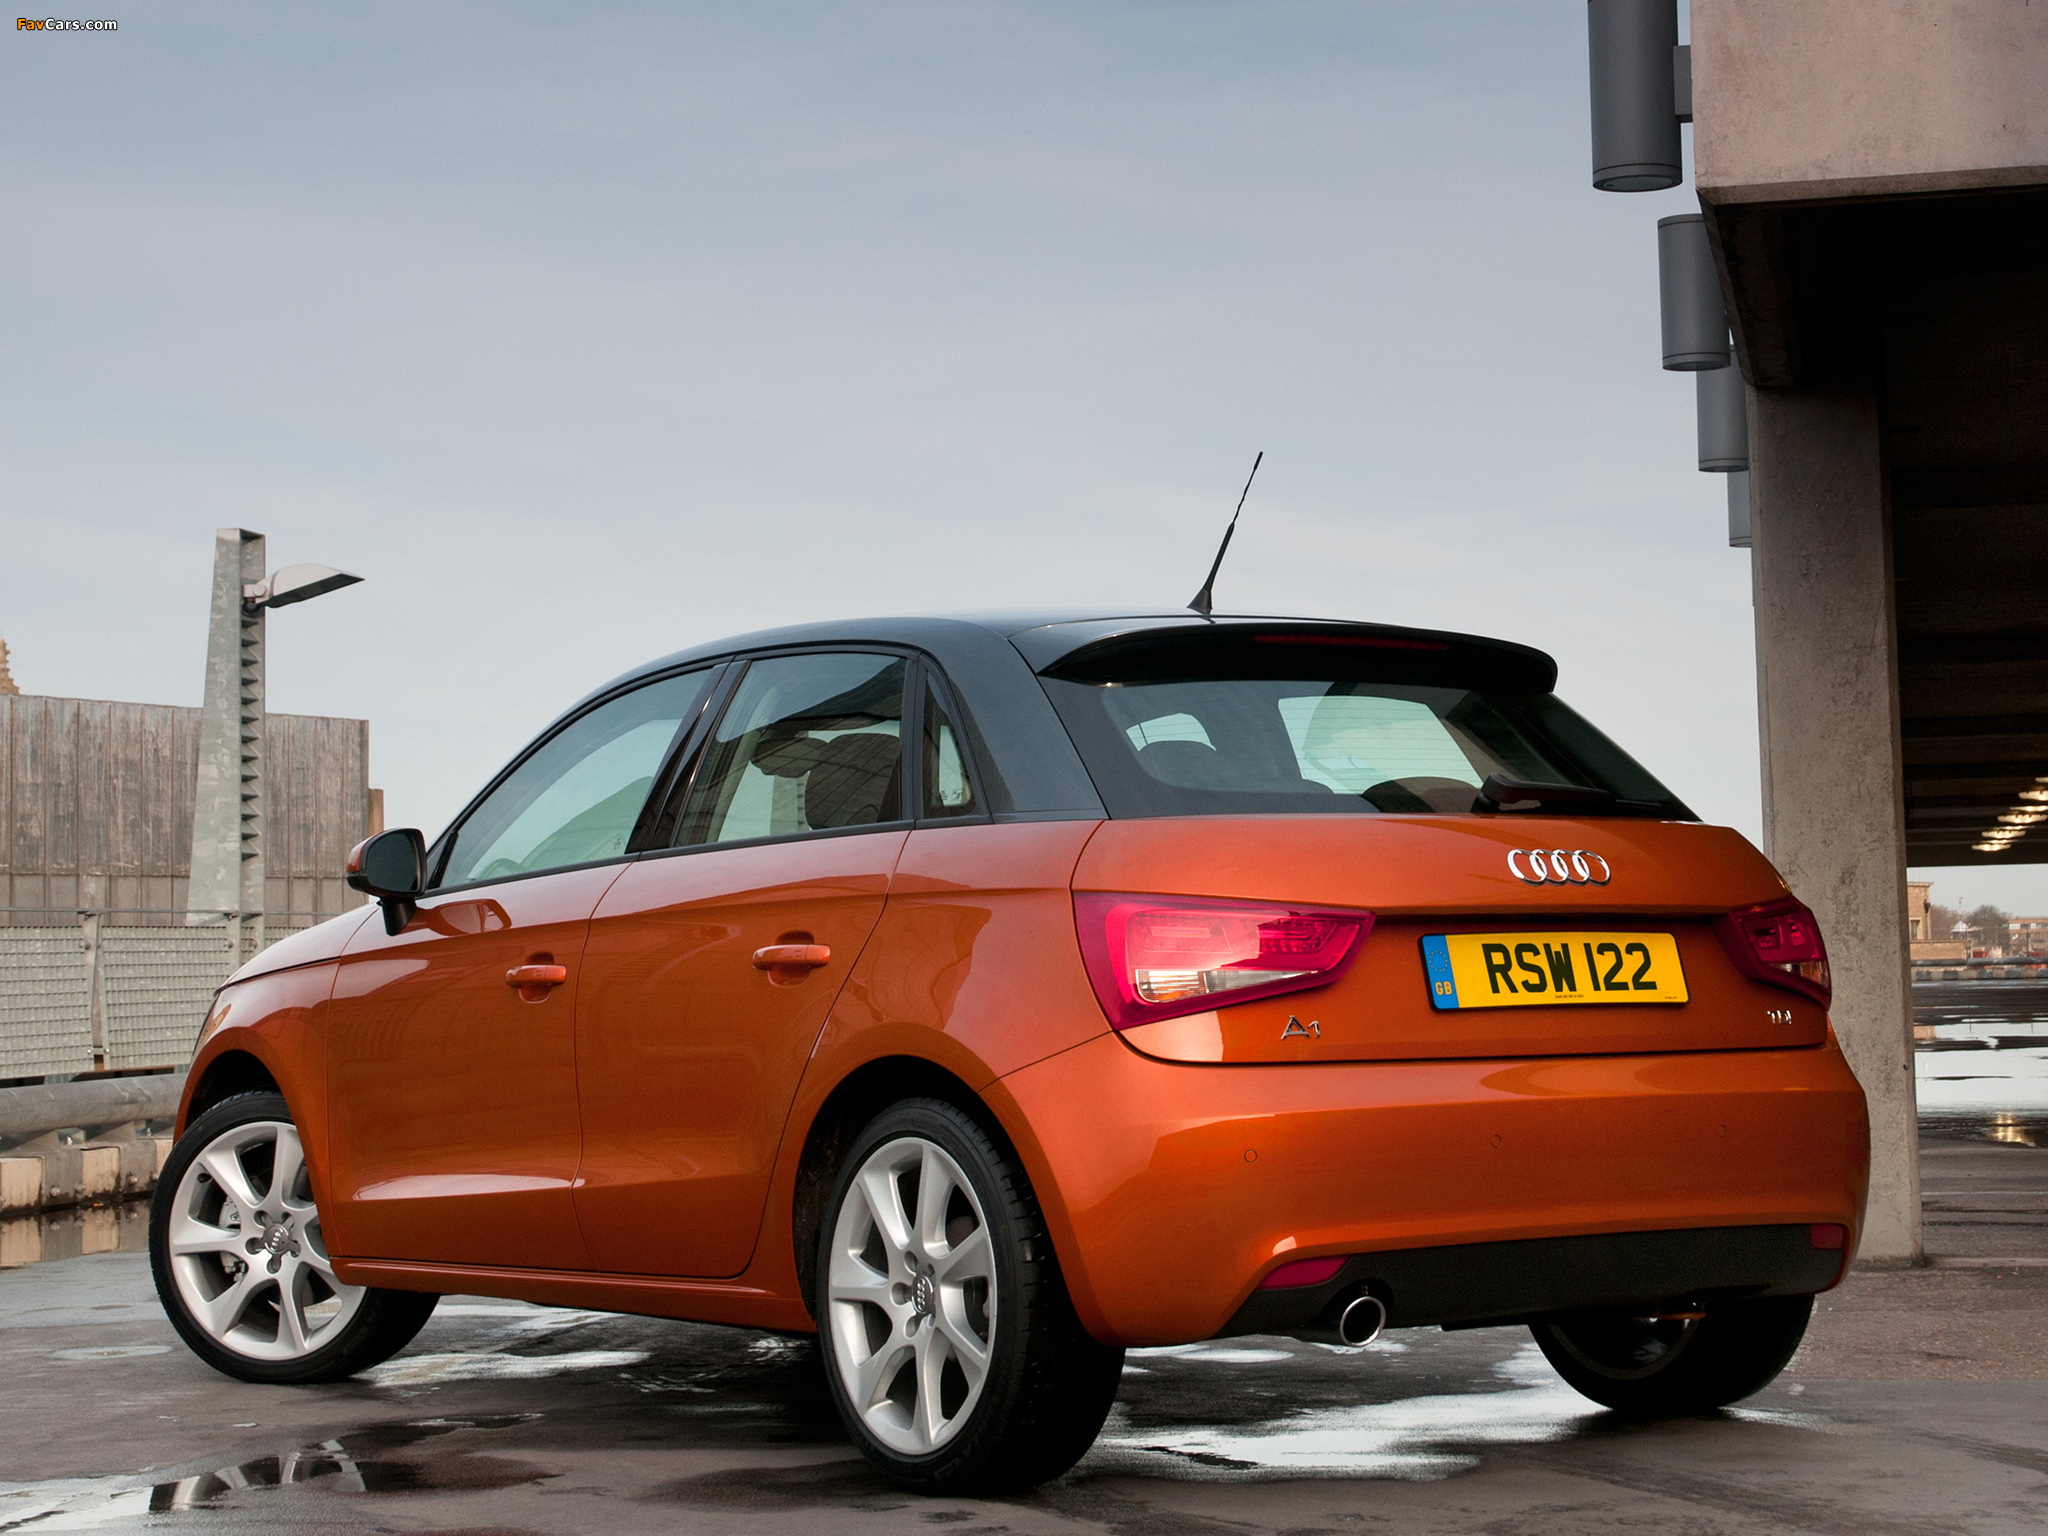 audi a1 sportback tdi uk spec 8x 2012 pictures 2048x1536. Black Bedroom Furniture Sets. Home Design Ideas